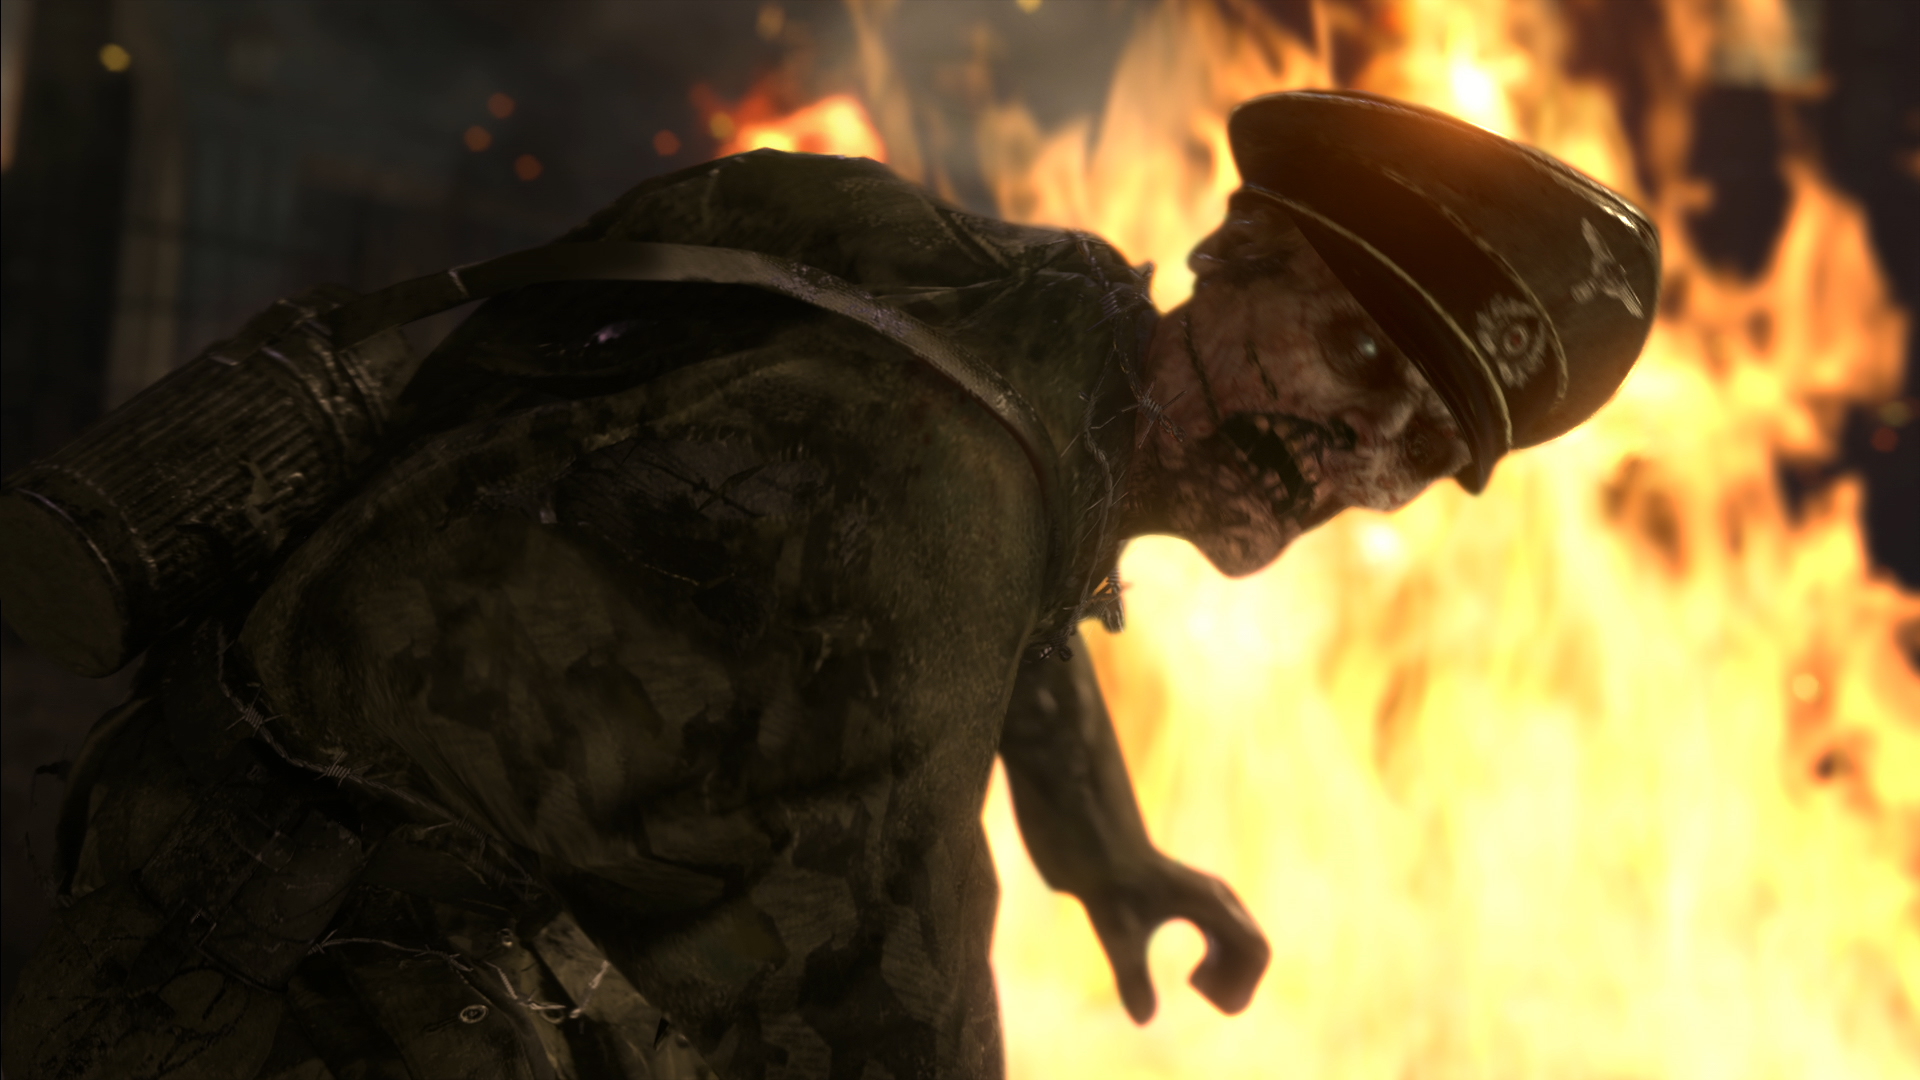 A new trailer for Call of Duty: World War 2 Zombies has been released